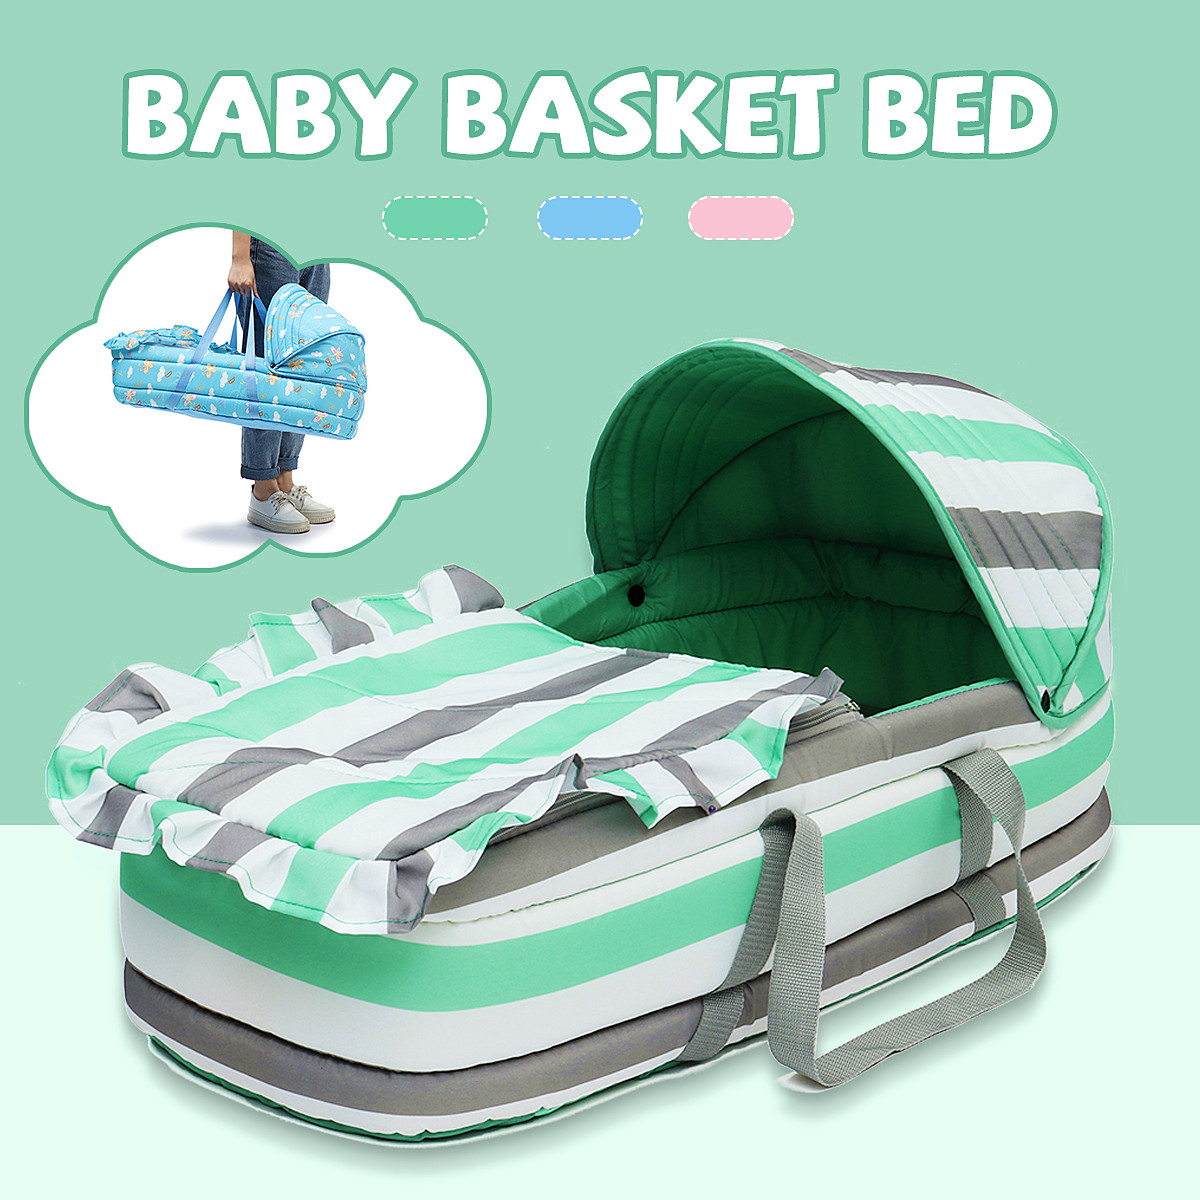 Portable Newborn Baby Infant Moses Basket Bed Baby Cradle Bassinet Travel Comfortable